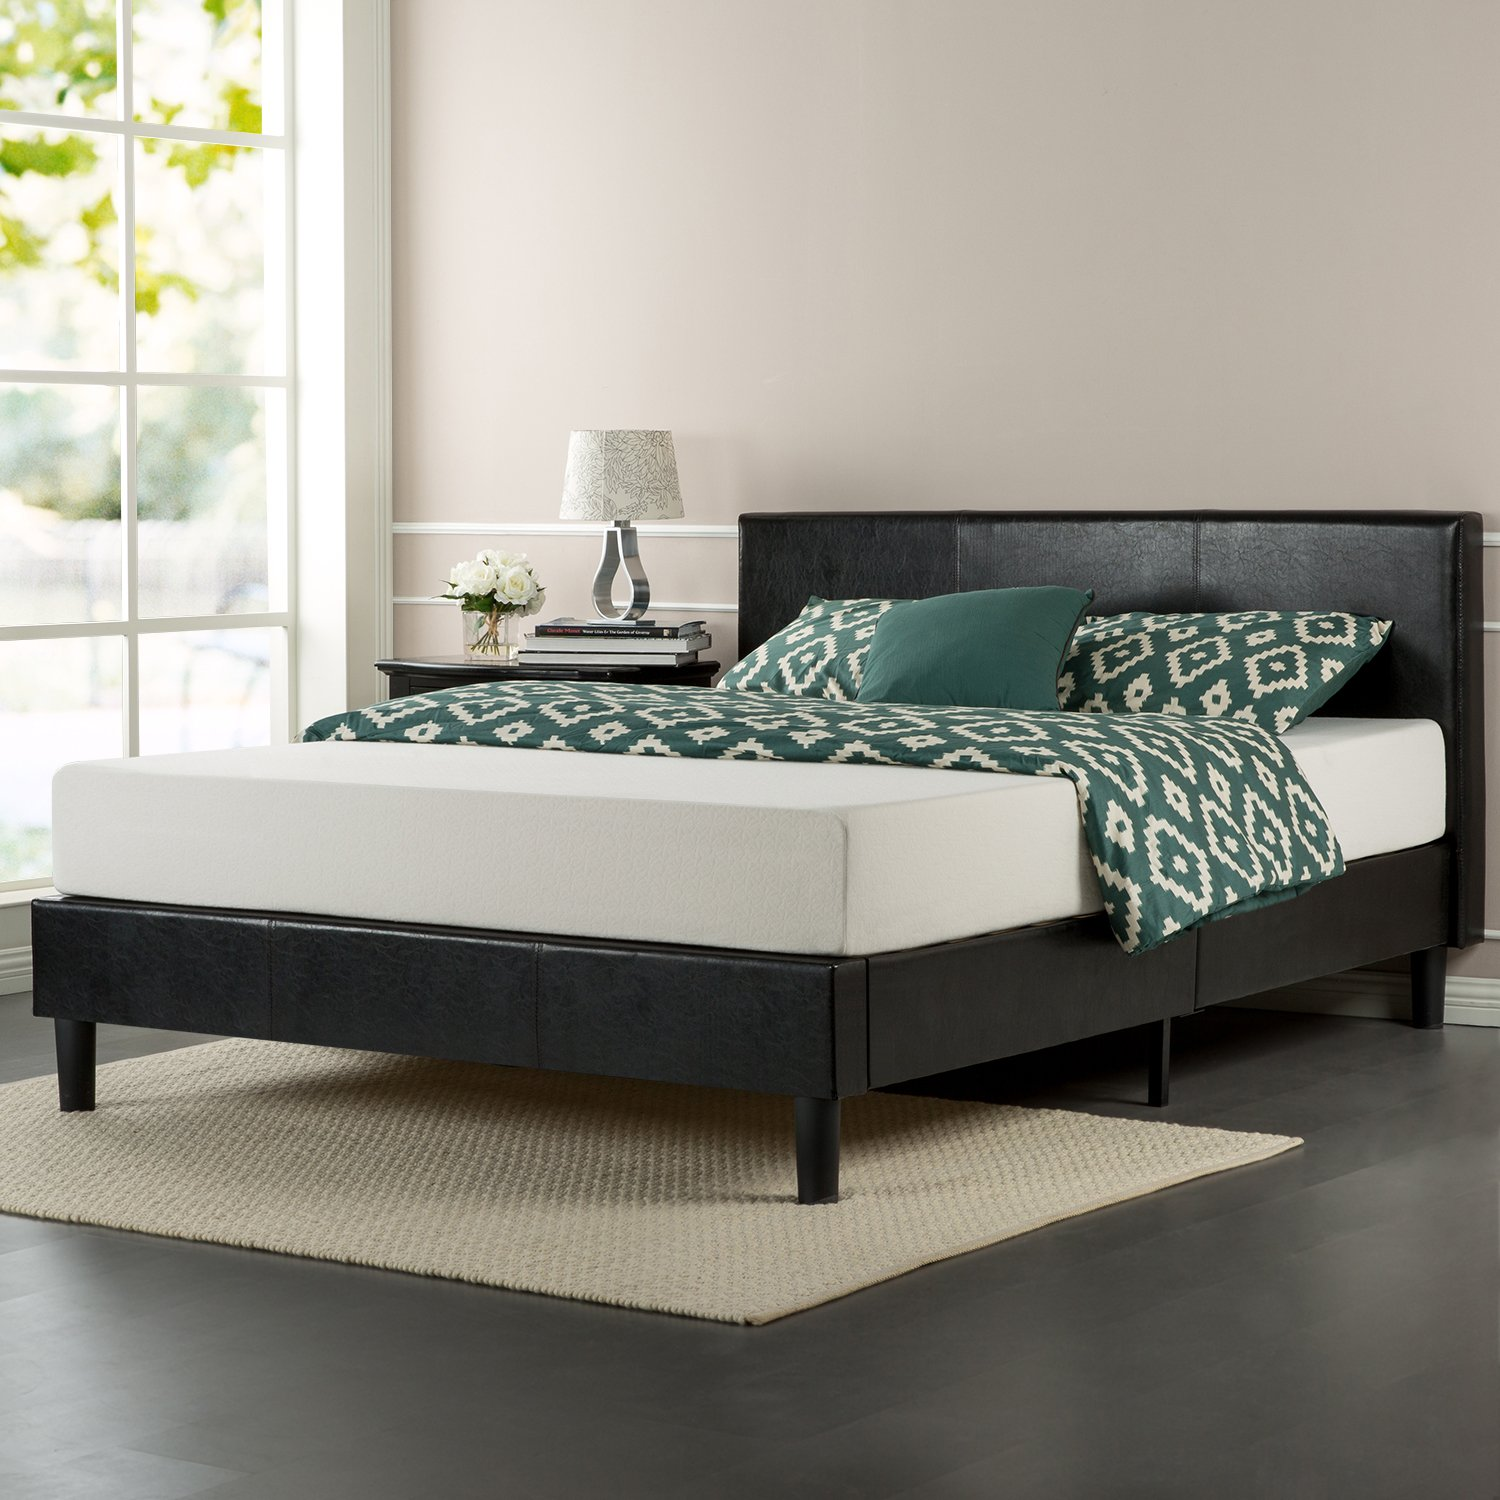 Amazon com  Zinus Faux Leather Upholstered Platform Bed with Wooden Slats   Queen  Kitchen   Dining. Amazon com  Zinus Faux Leather Upholstered Platform Bed with